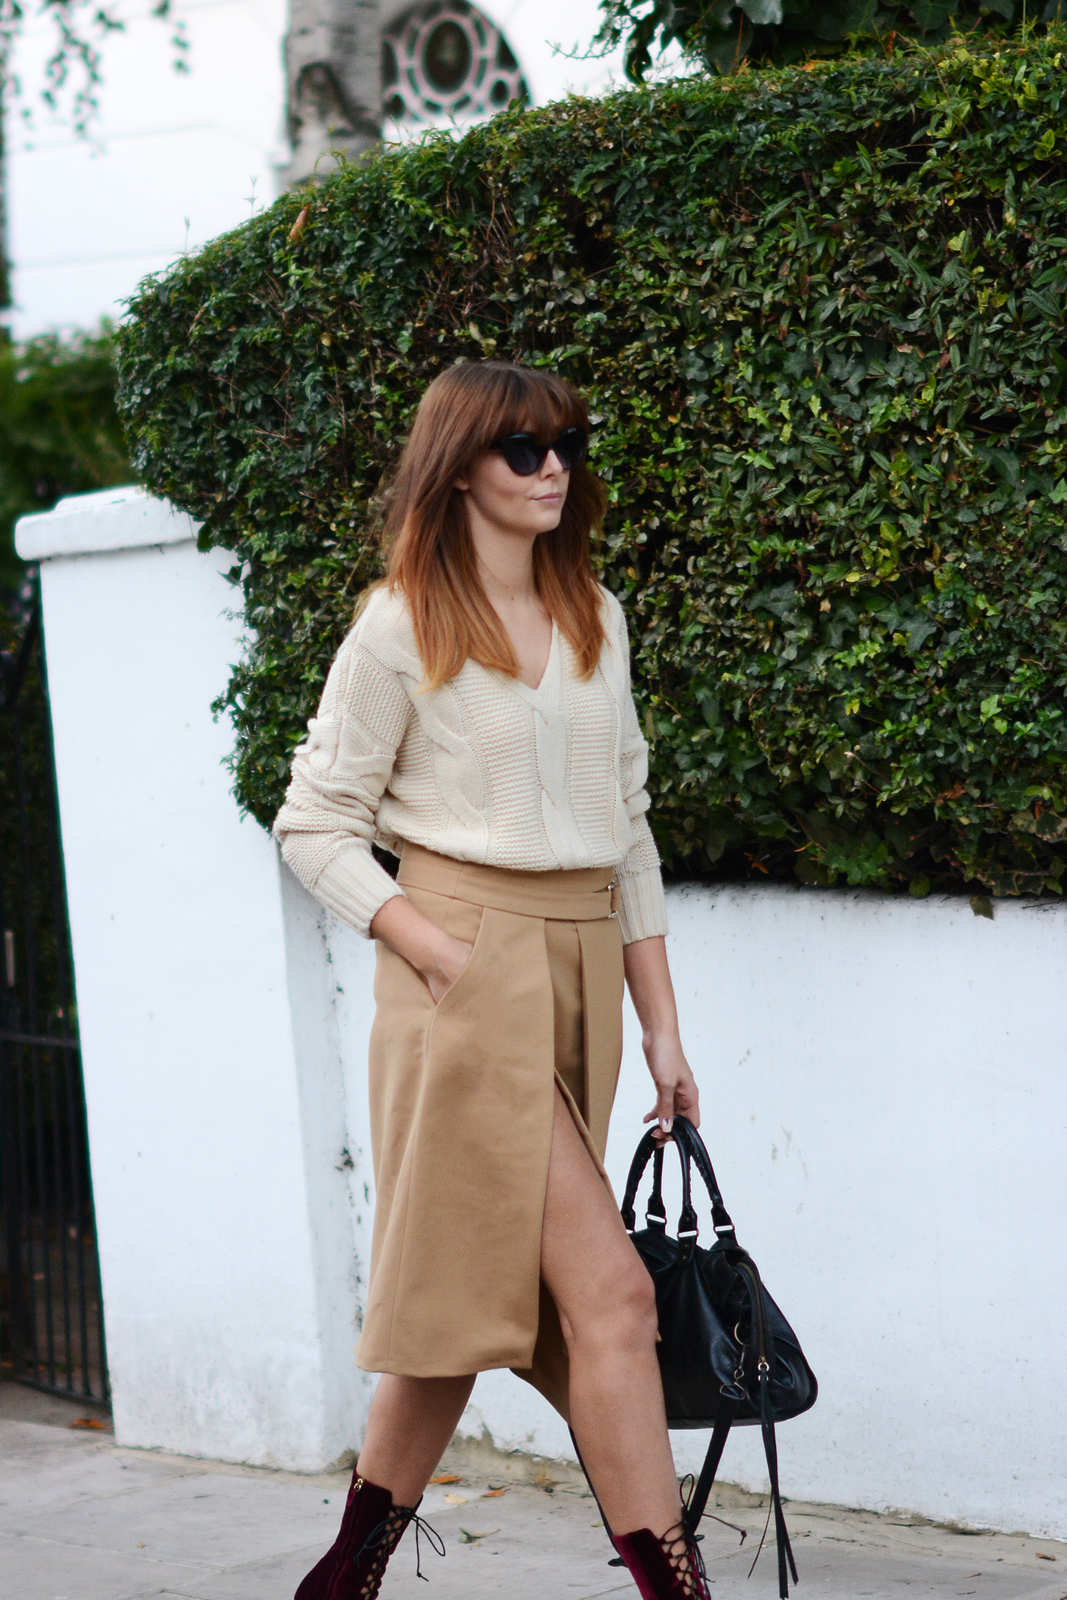 EJSTYLE - OOTD Zara Camel wrap skirt with buckles, chunky cream knitted sweater jumper, Balenciaga motorcycle le dix bag, burgundy velvet boots, cat eye sunglasses